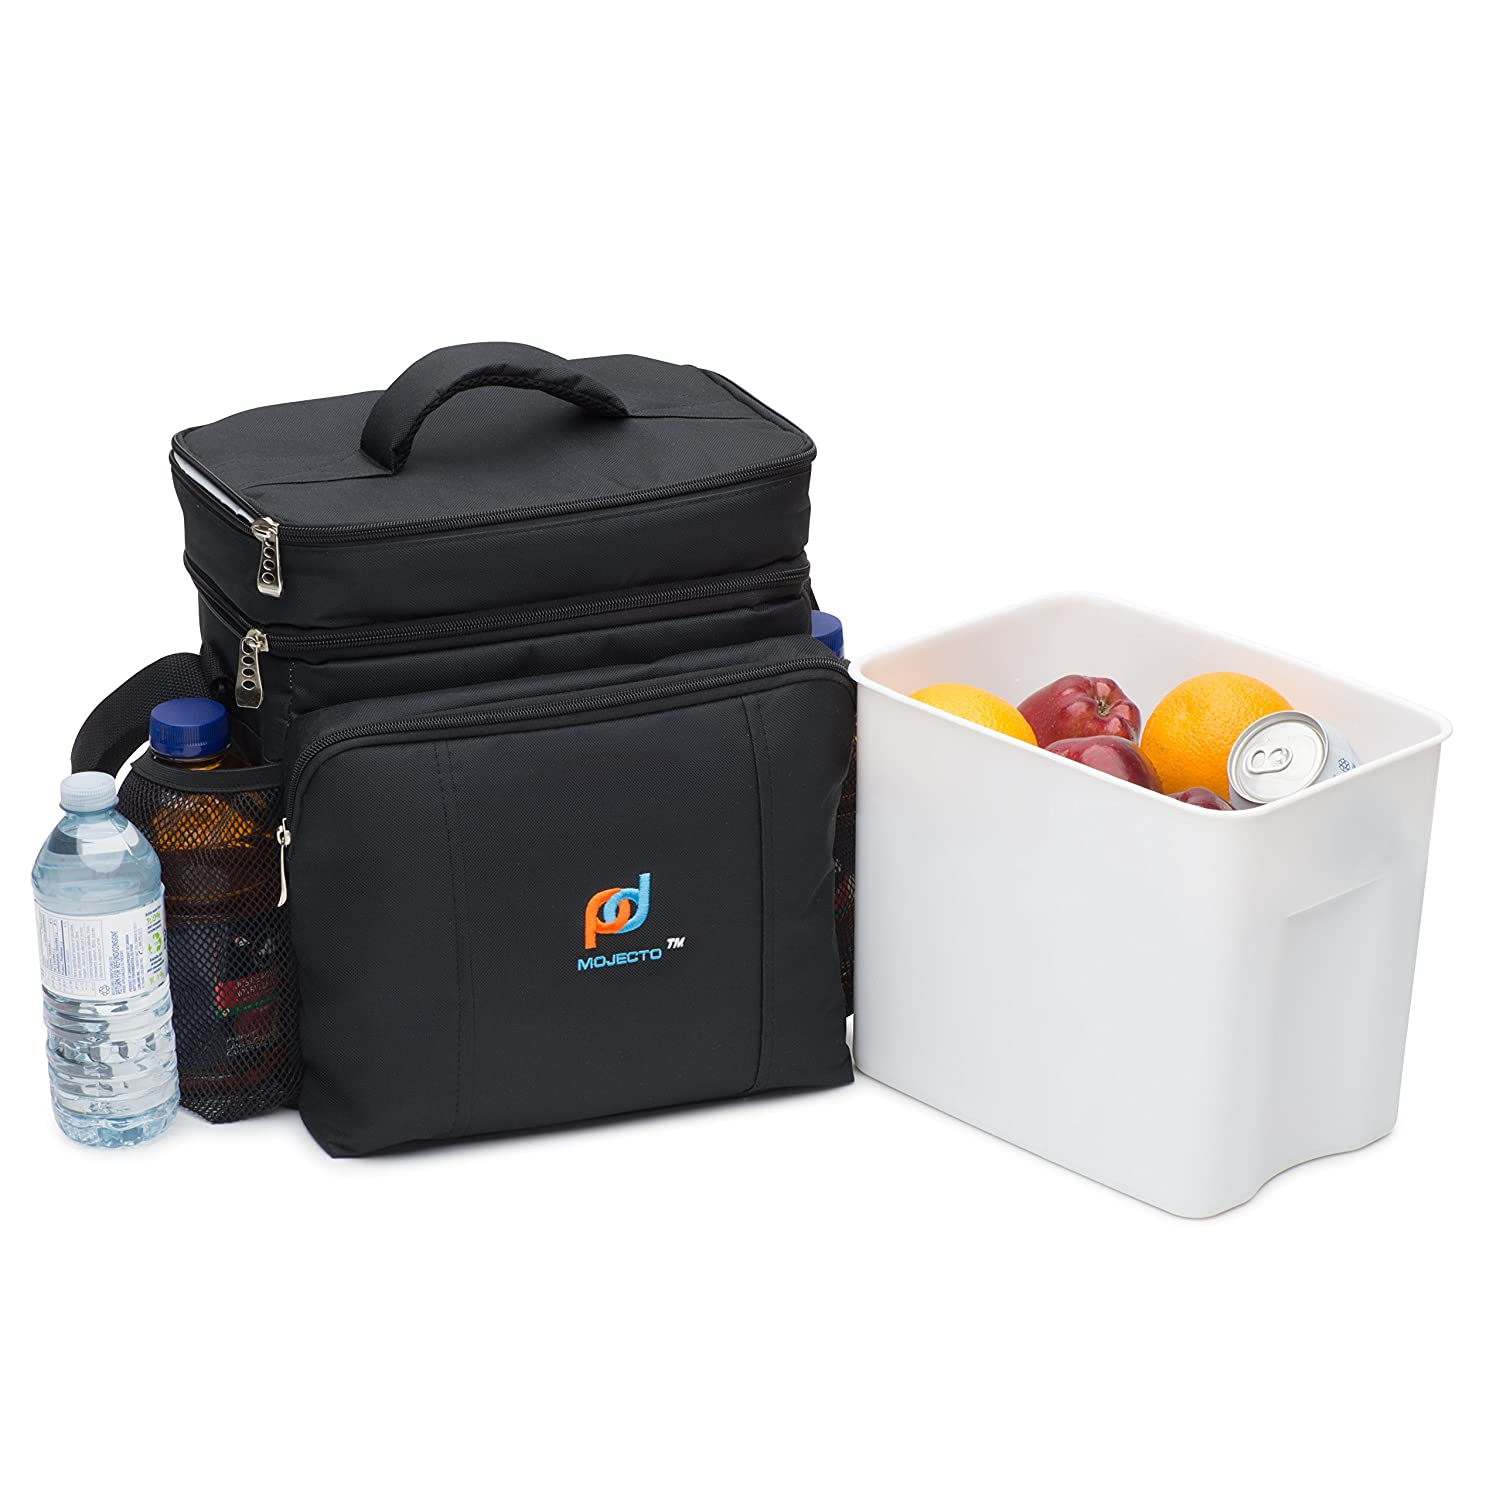 Two Compartments Cooler Lunch Bag With Removable Leakproof Plastic Hardliner Bucket. 600D Strong Ployester, Thick Foam Insulation, Large Pockets And Zippers. Medium Lunch Bag for Everyday Use.